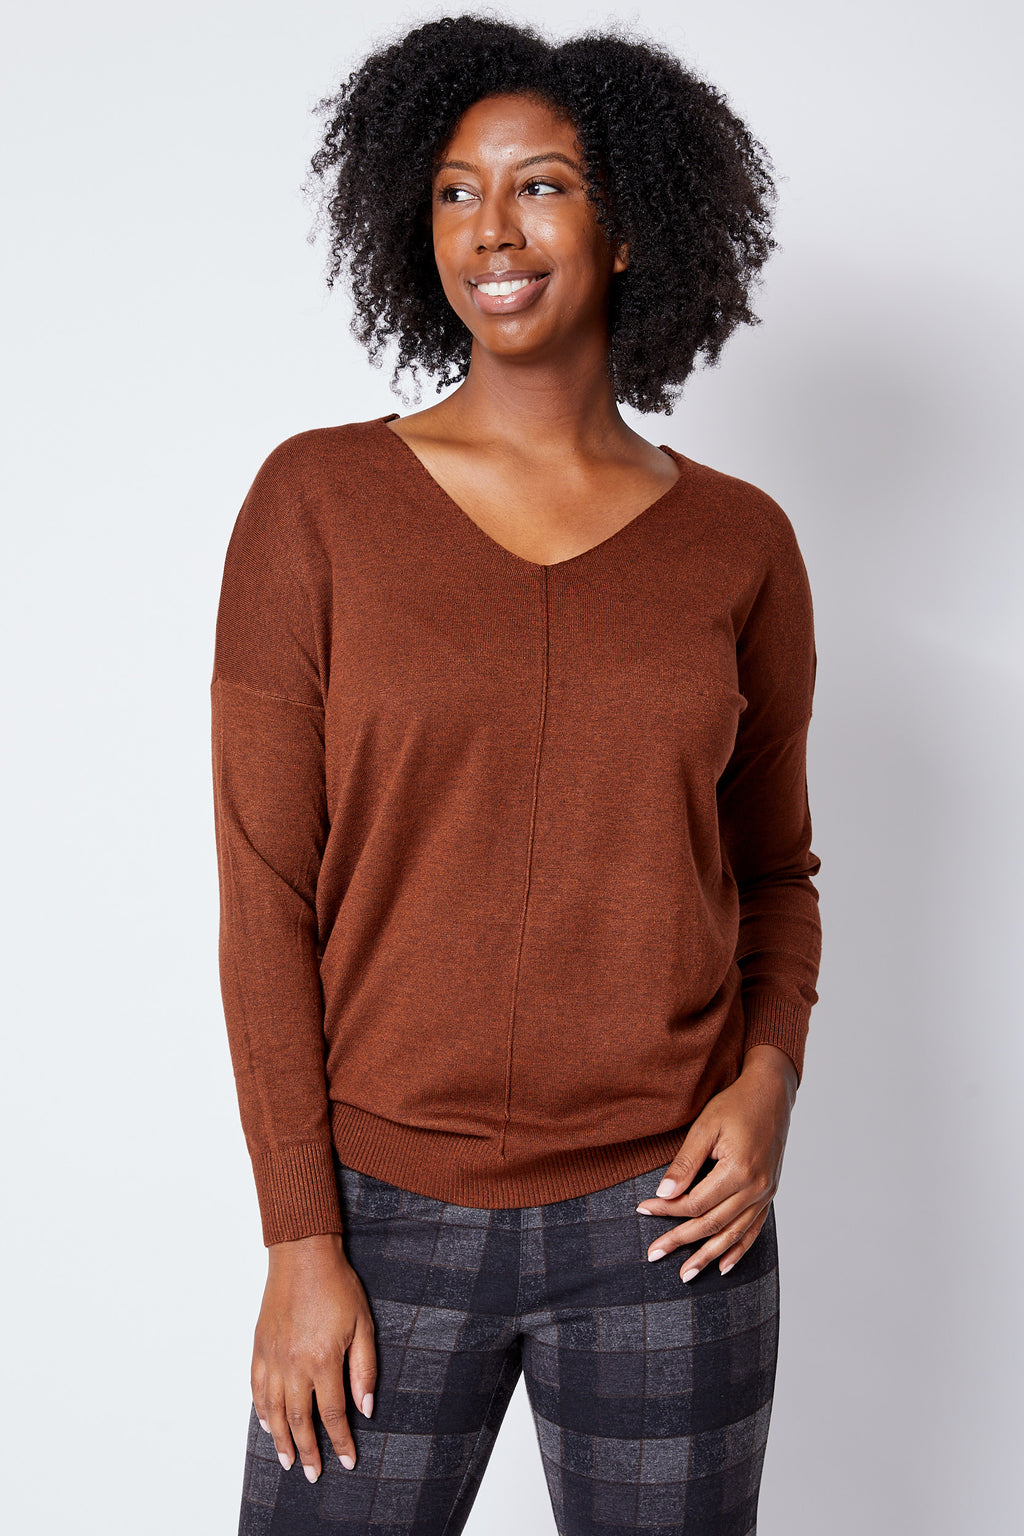 V-Neck Yummy Sweater - Jacqueline B Clothing